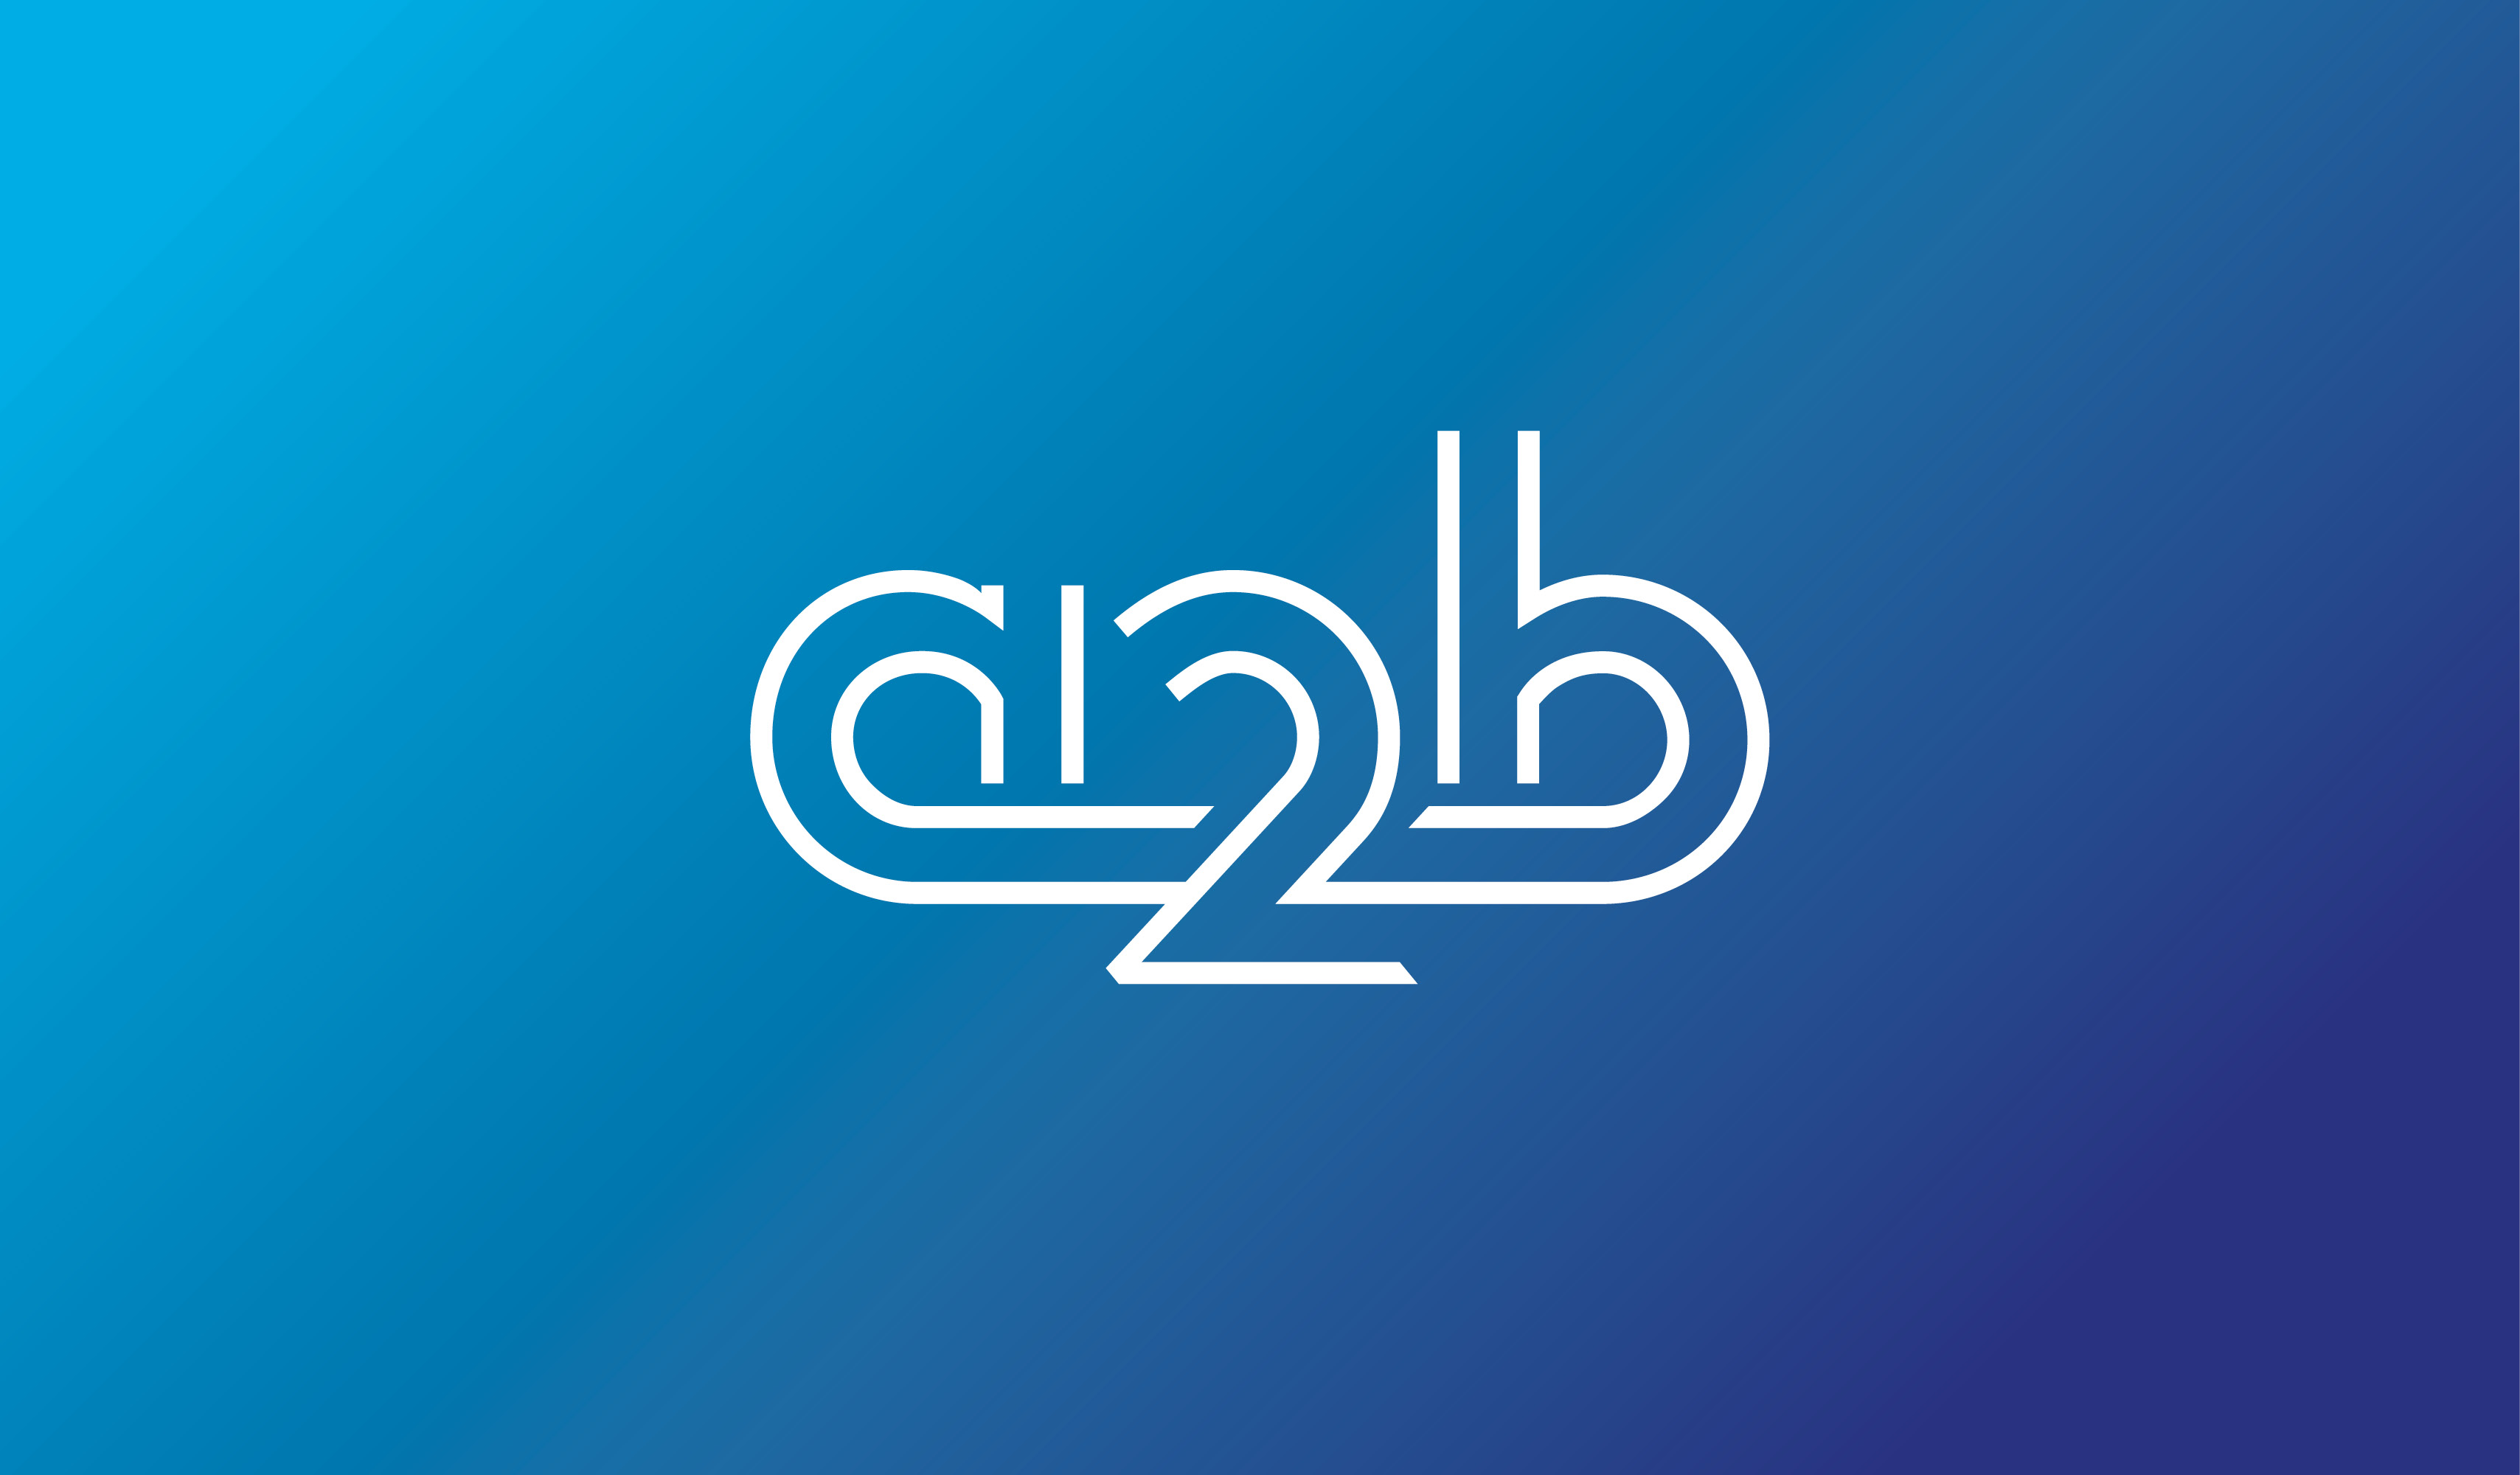 Cabcharge to A2B – A Visionary Direction For A Heritage Brand